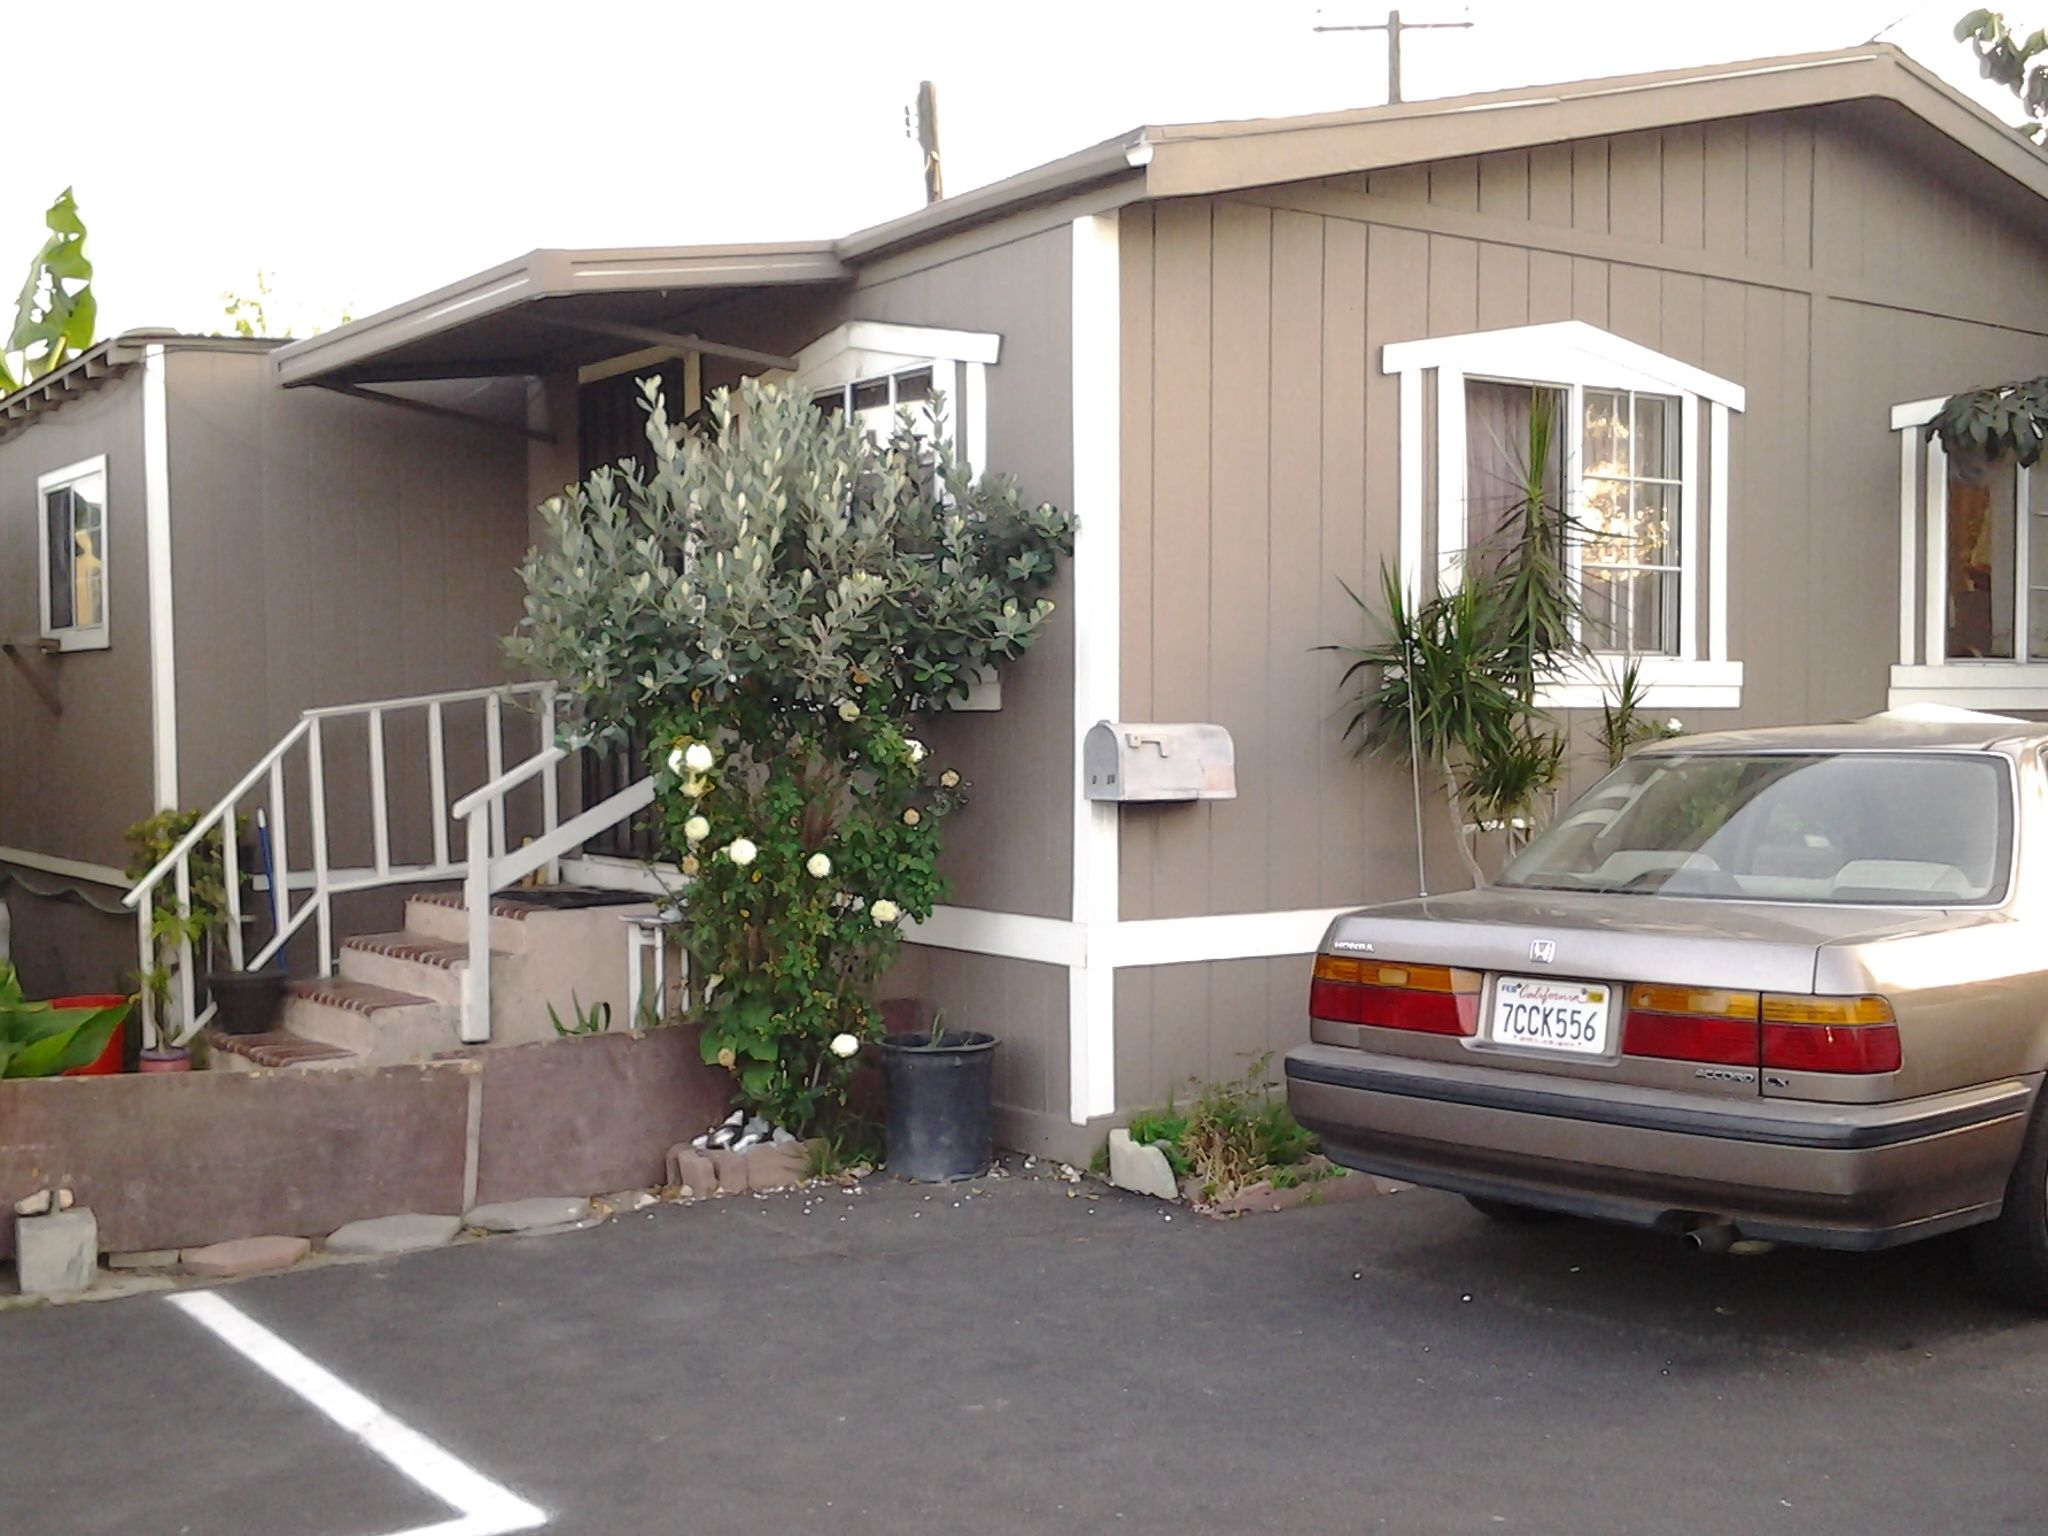 Baron mobile home for sale in paramount ca mobile homes